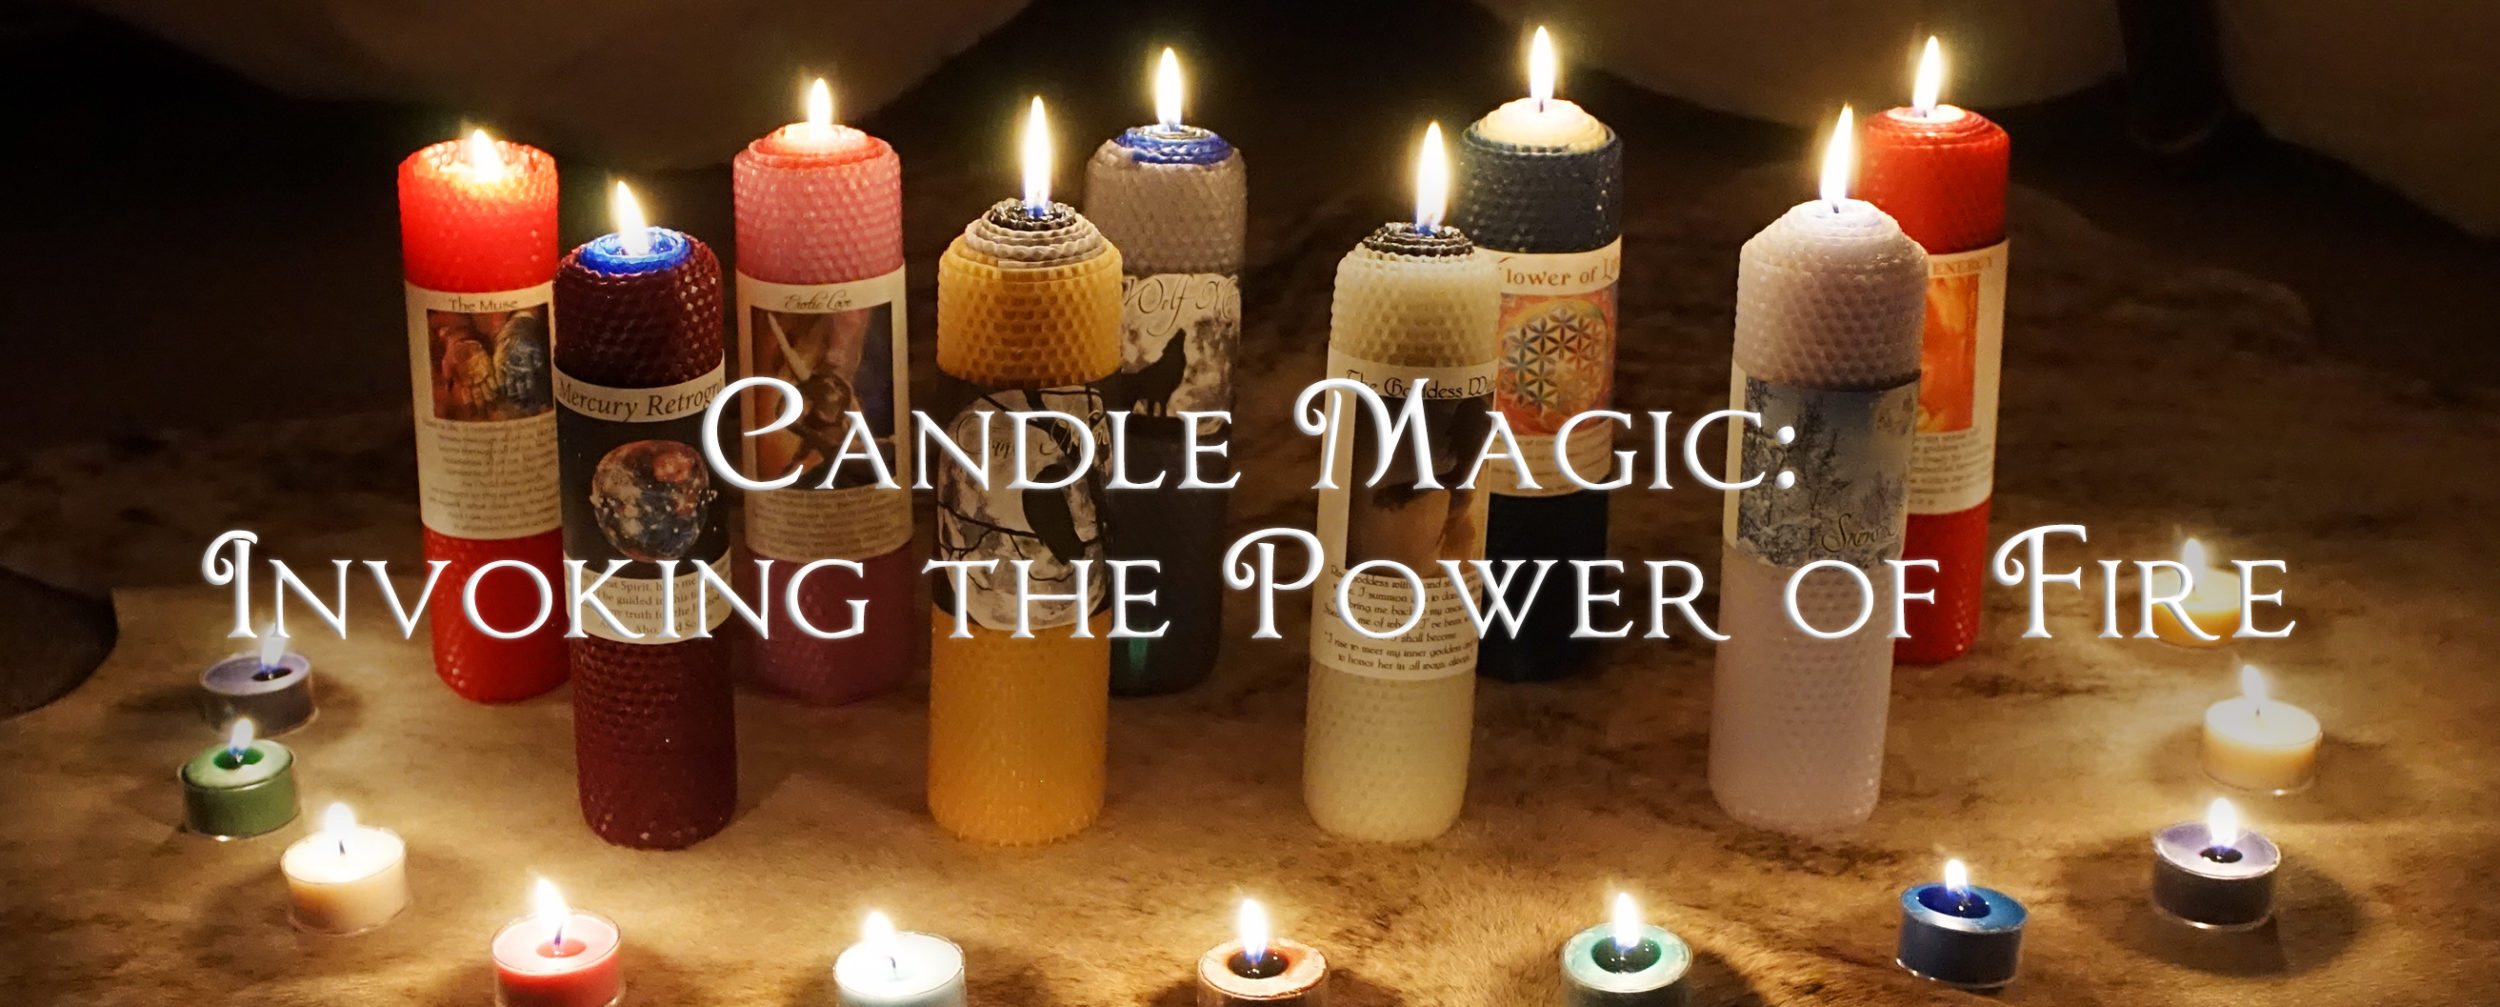 CandleMagic_Fire